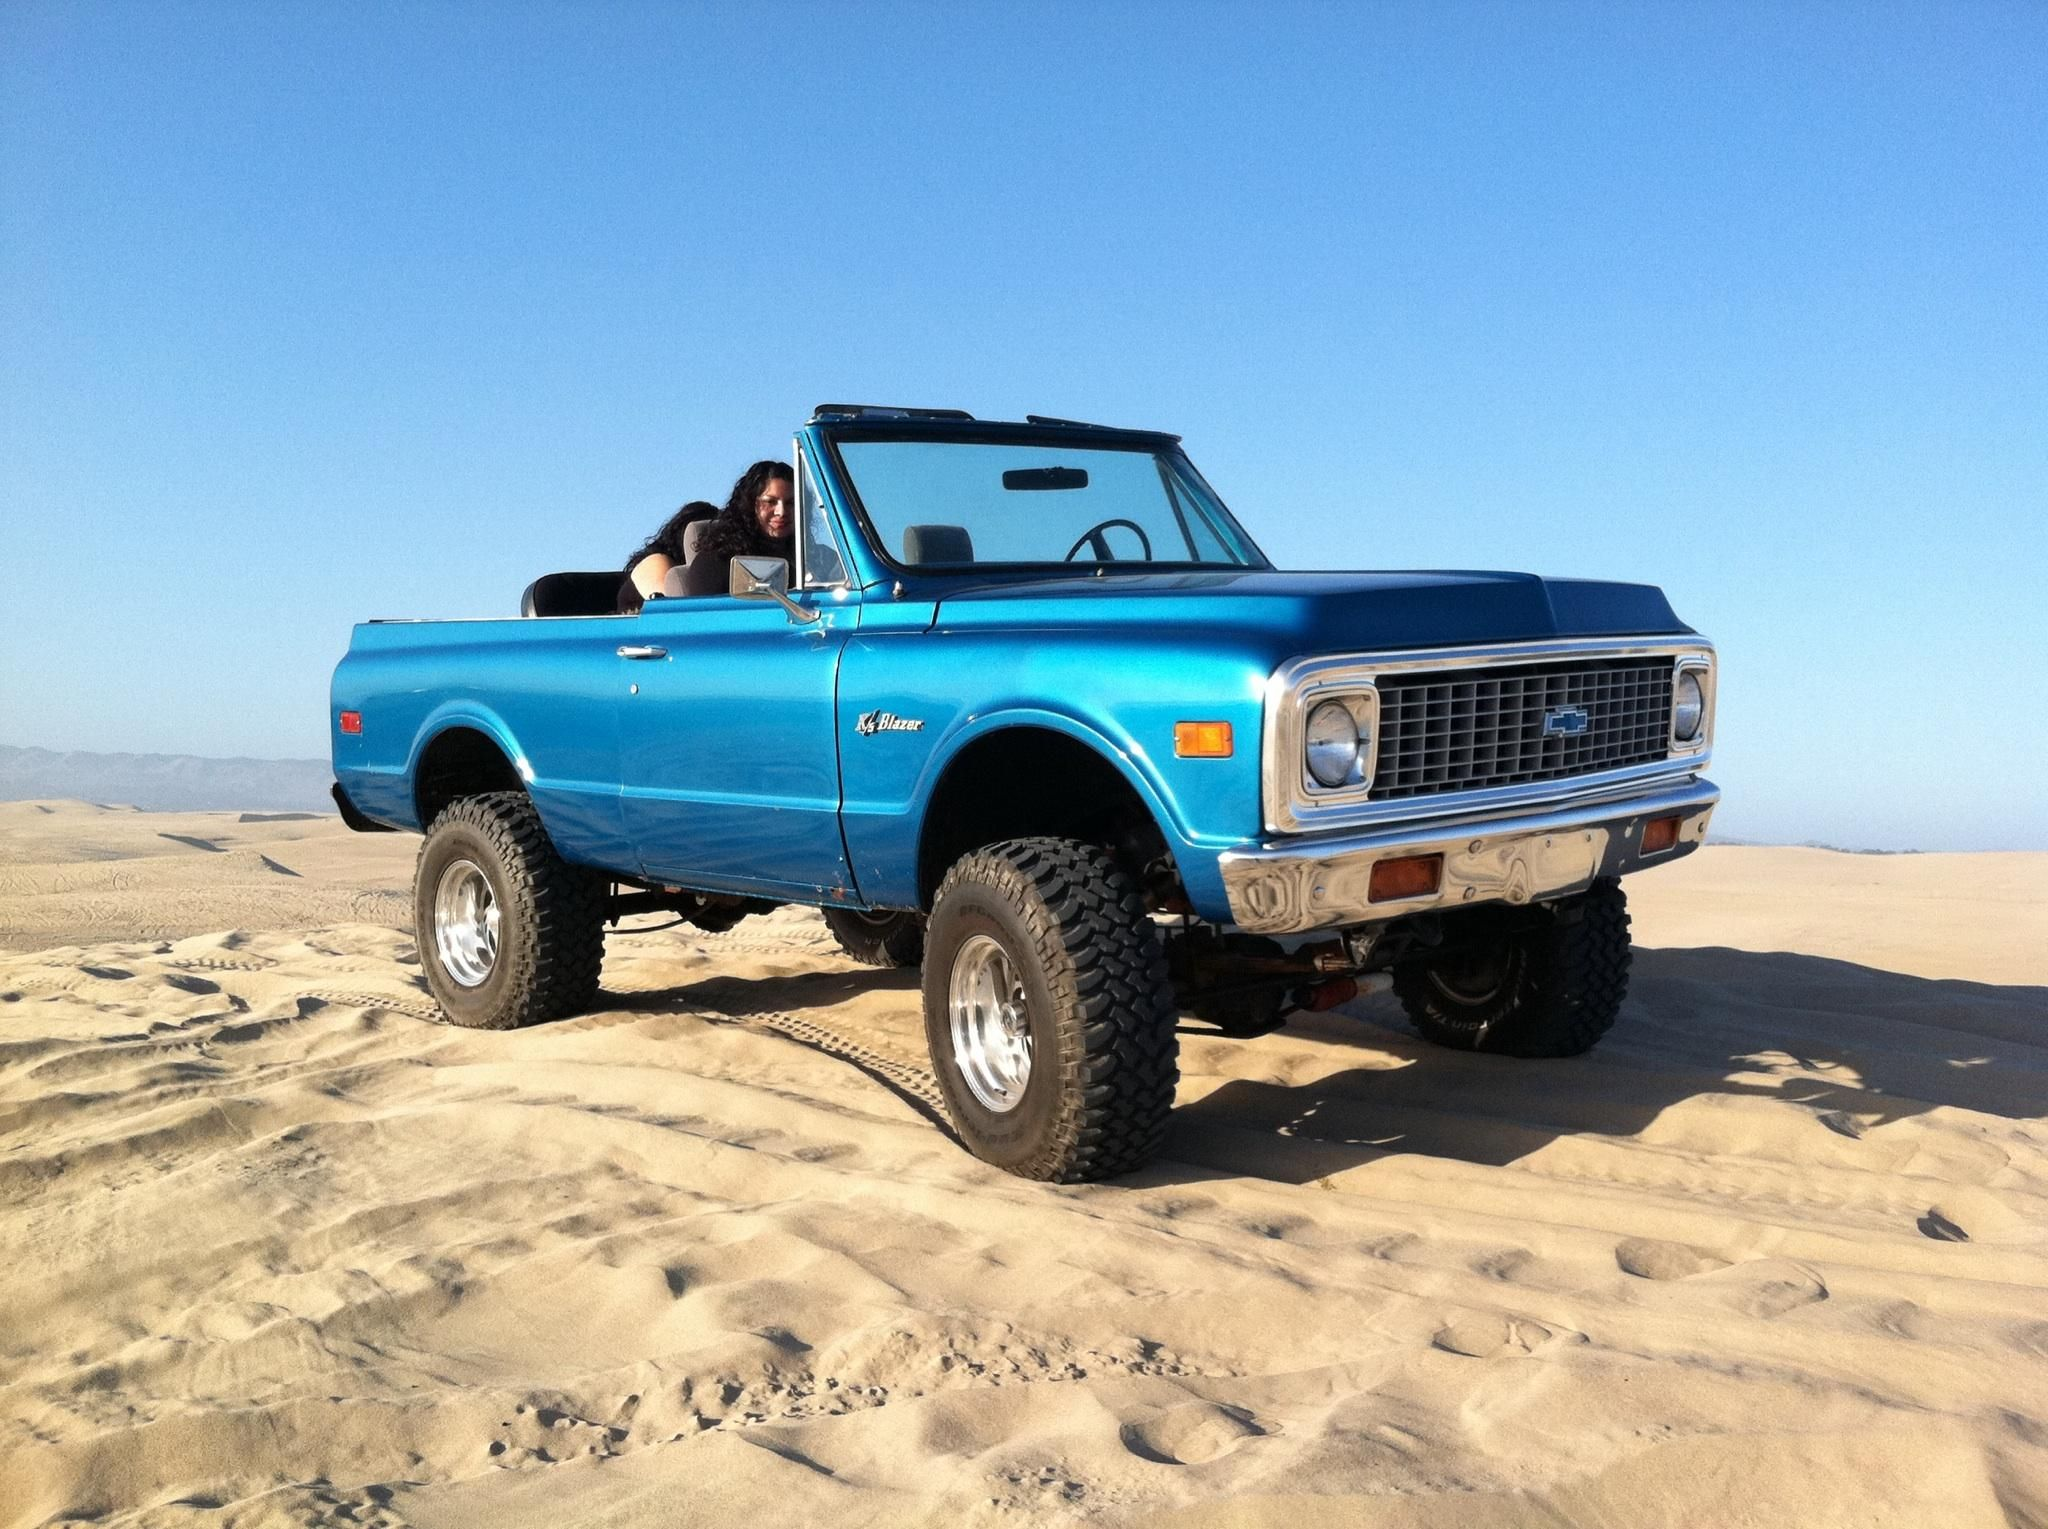 1972 Chevy Blazer My Dad Had One Of These It Was Like A Convertible Truck Gmc Trucks Trucks Chevy